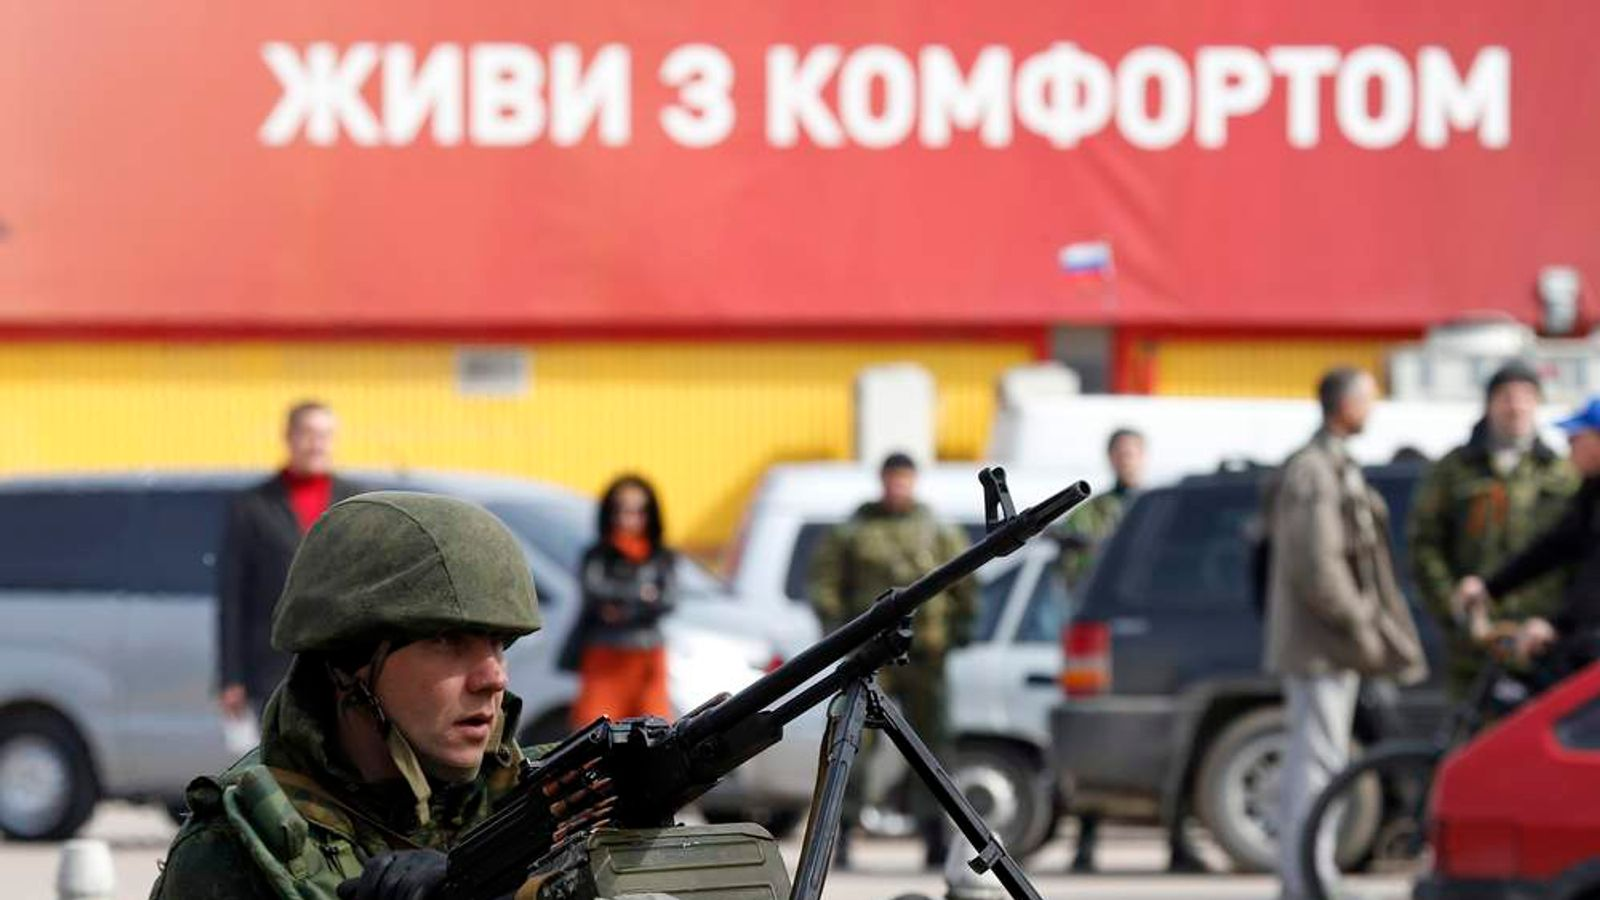 An armed man, believed to be a Russian serviceman, guards near the naval headquarters in Sevastopol